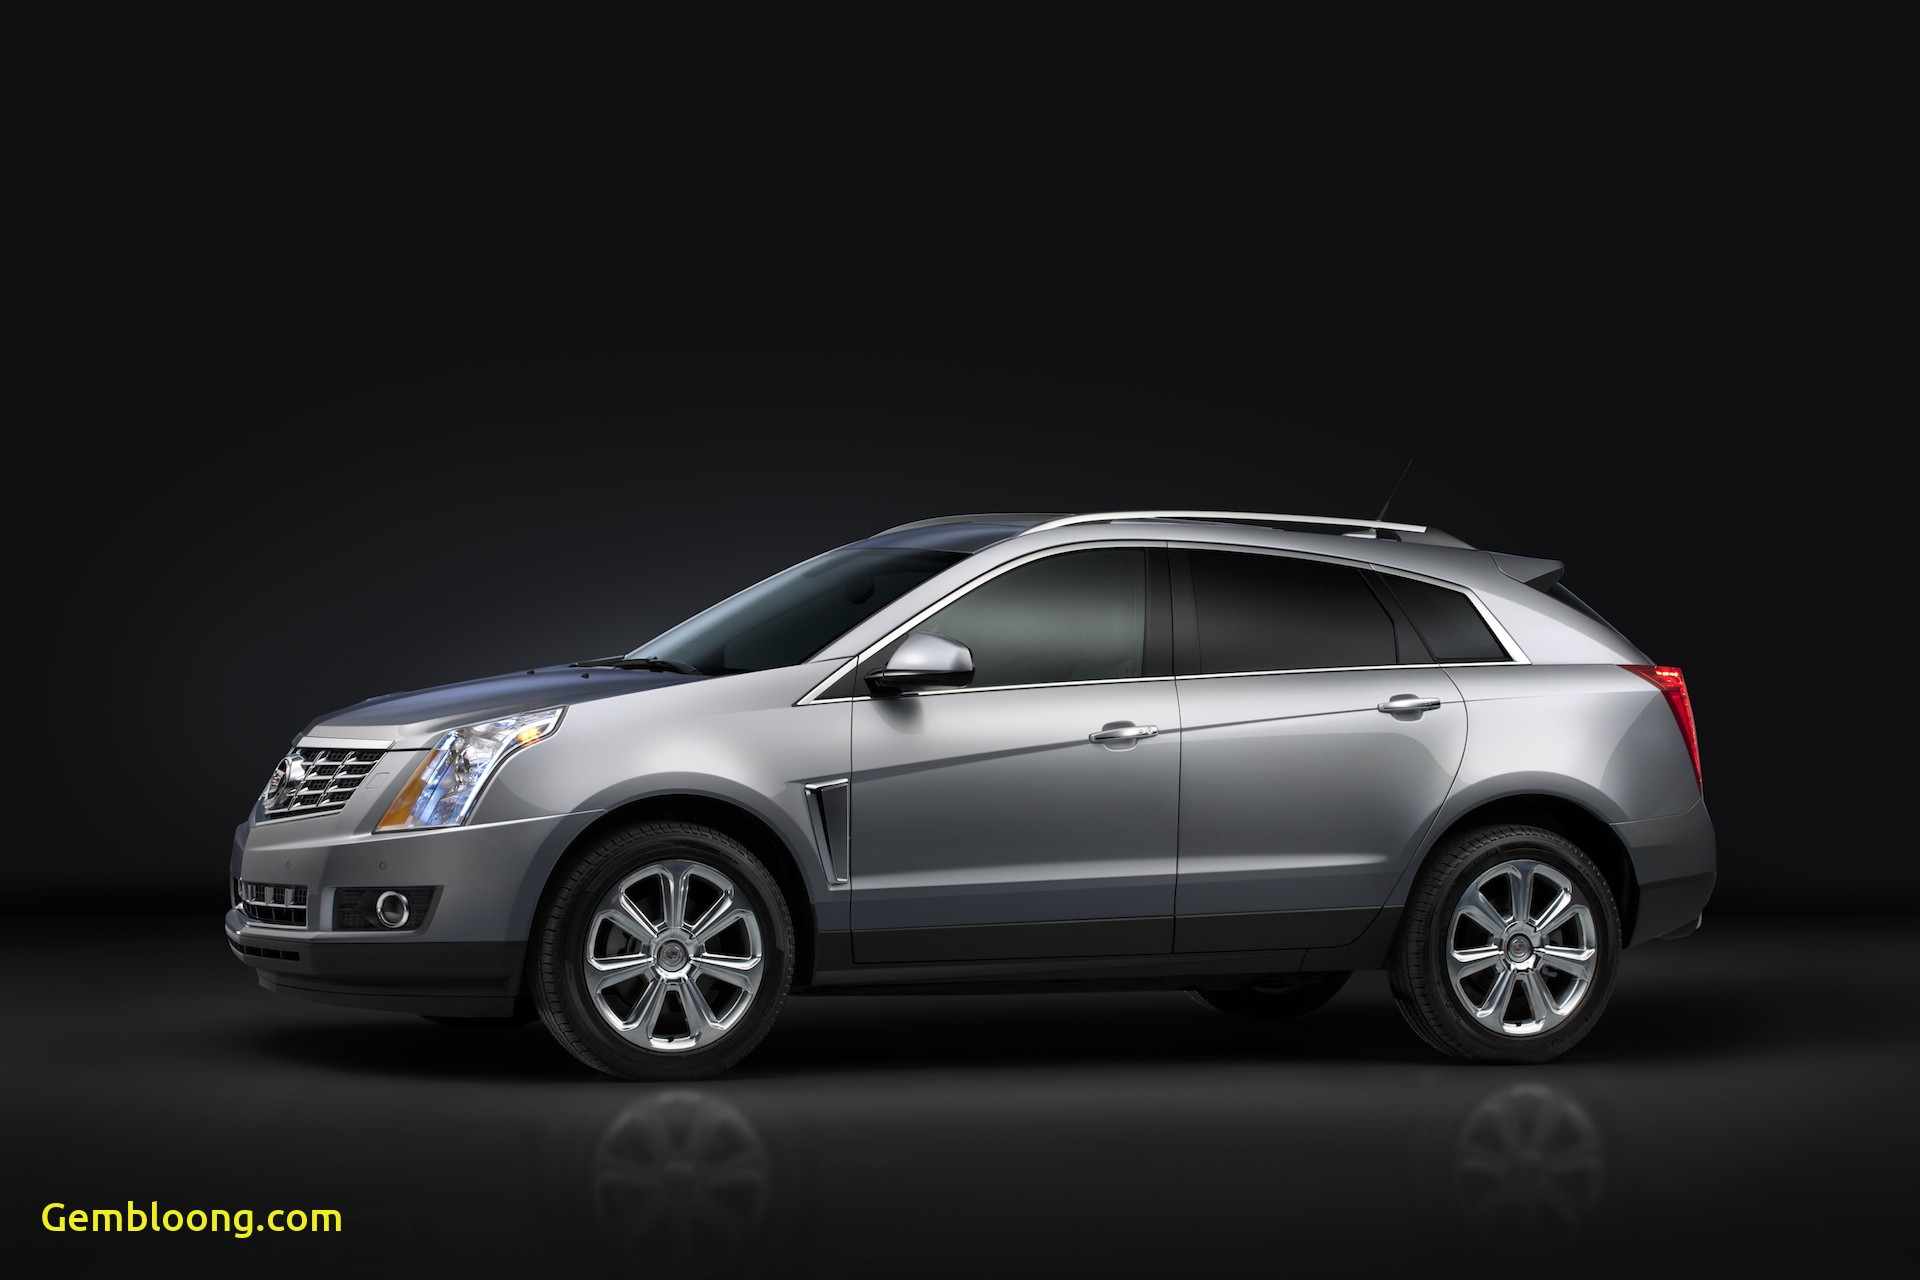 2013 Cadillac Srx Best Of New and Used Cadillac Srx Prices S Reviews Specs